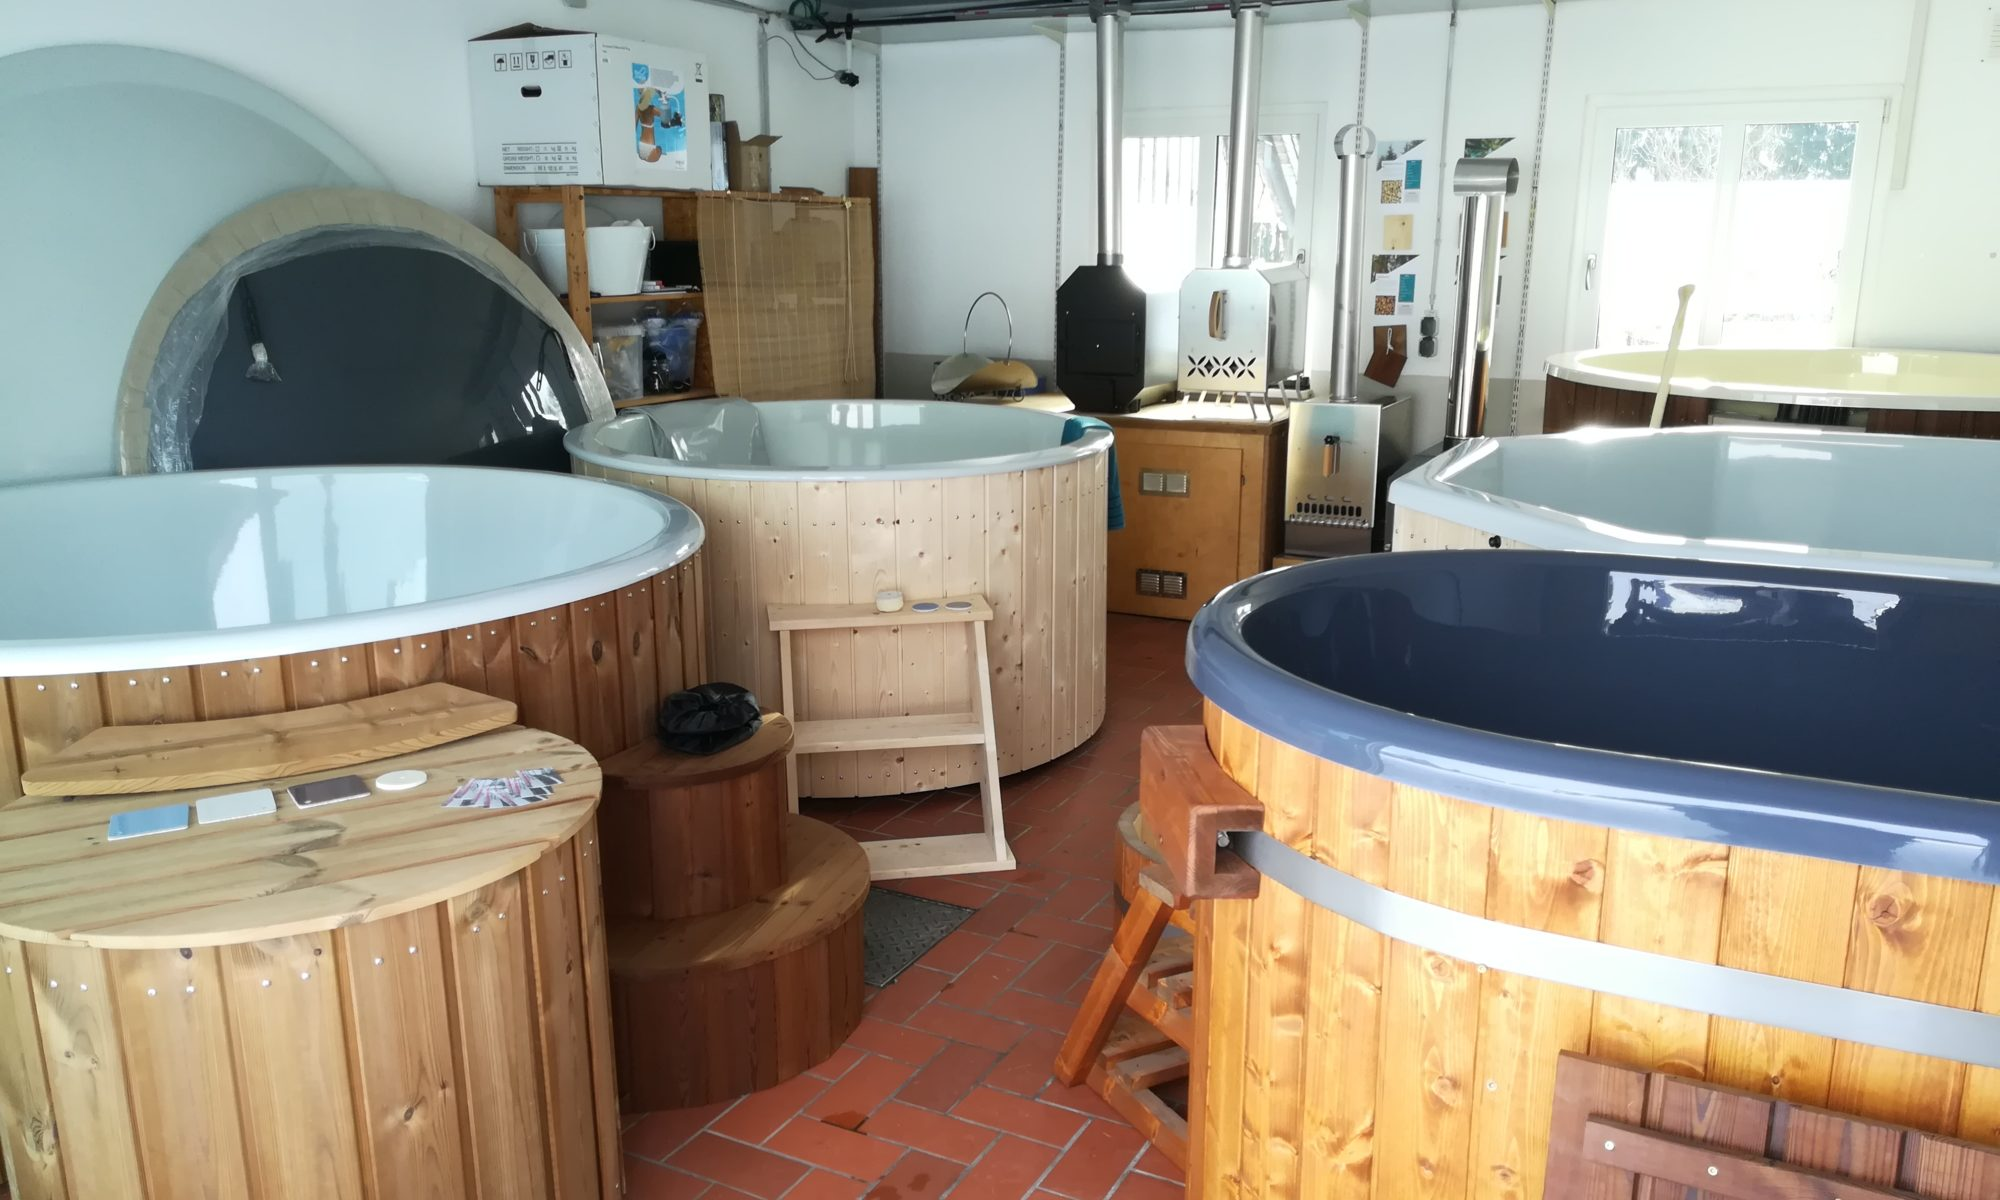 Showroom für Hottubs in Bayern